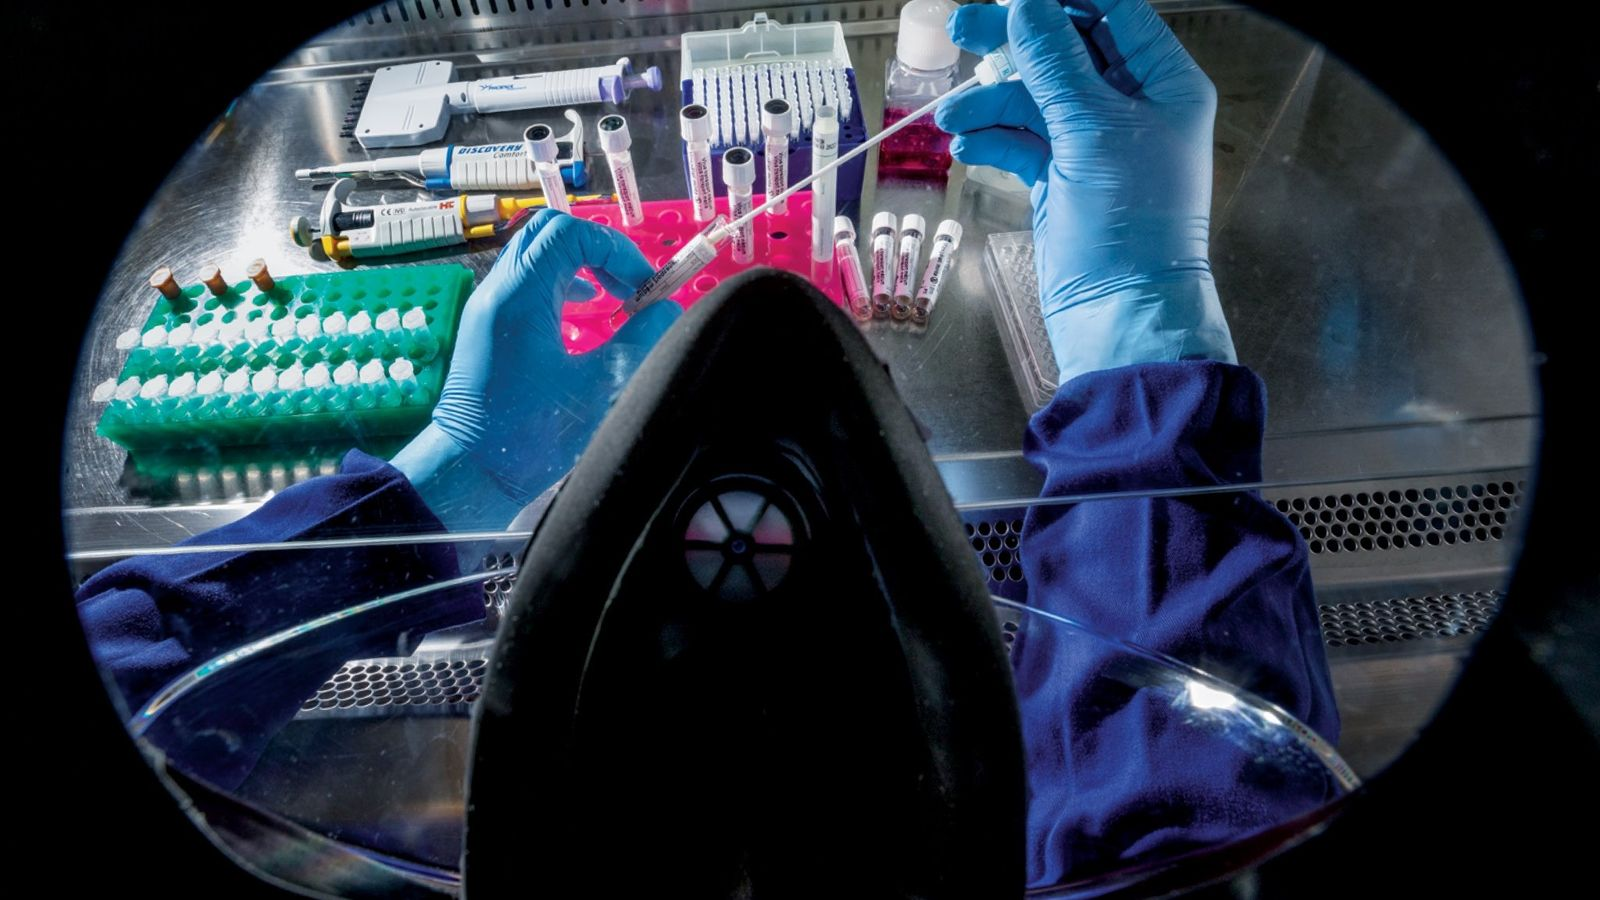 This laboratory work space is photographed through a technician's face shield and past its respirator mask ...